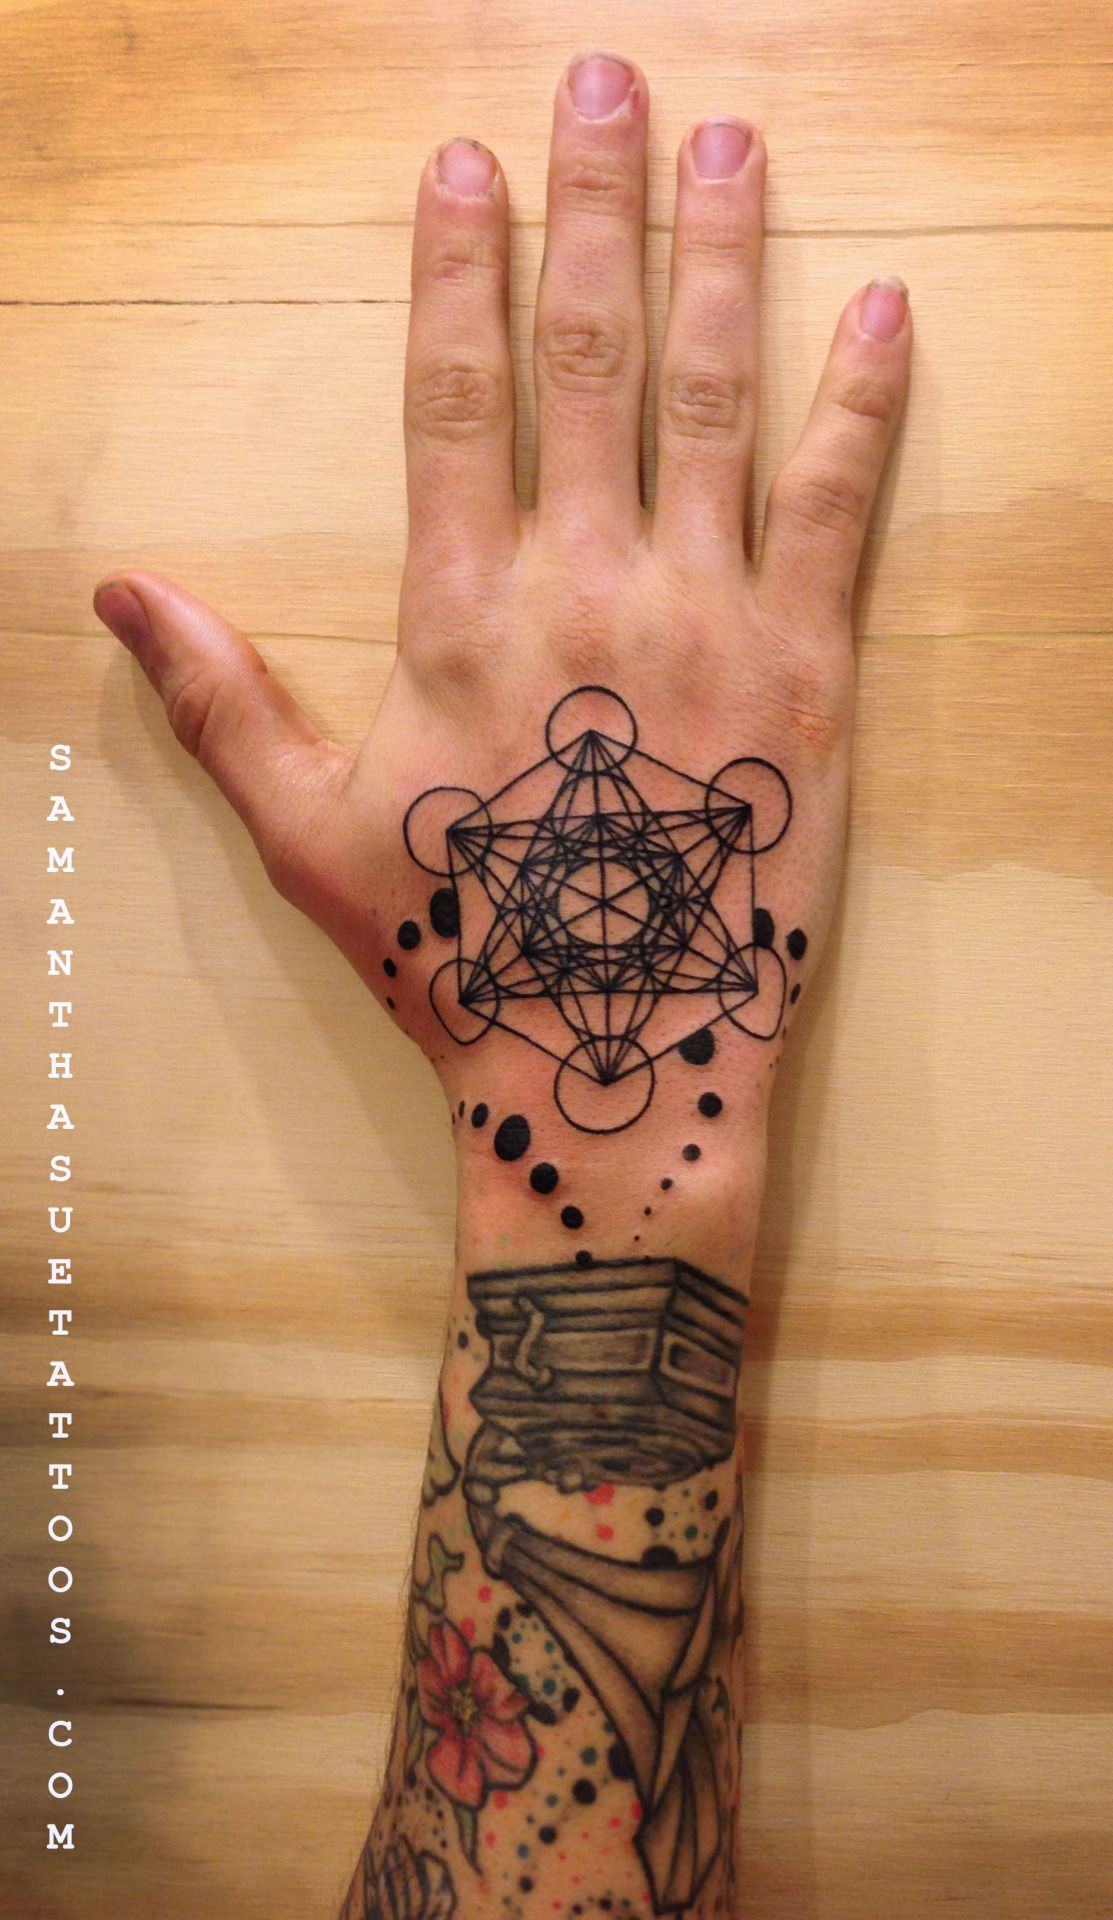 Tattoo metatron buscar con google meditation and lifestyle tattoo metatron buscar con google thecheapjerseys Image collections